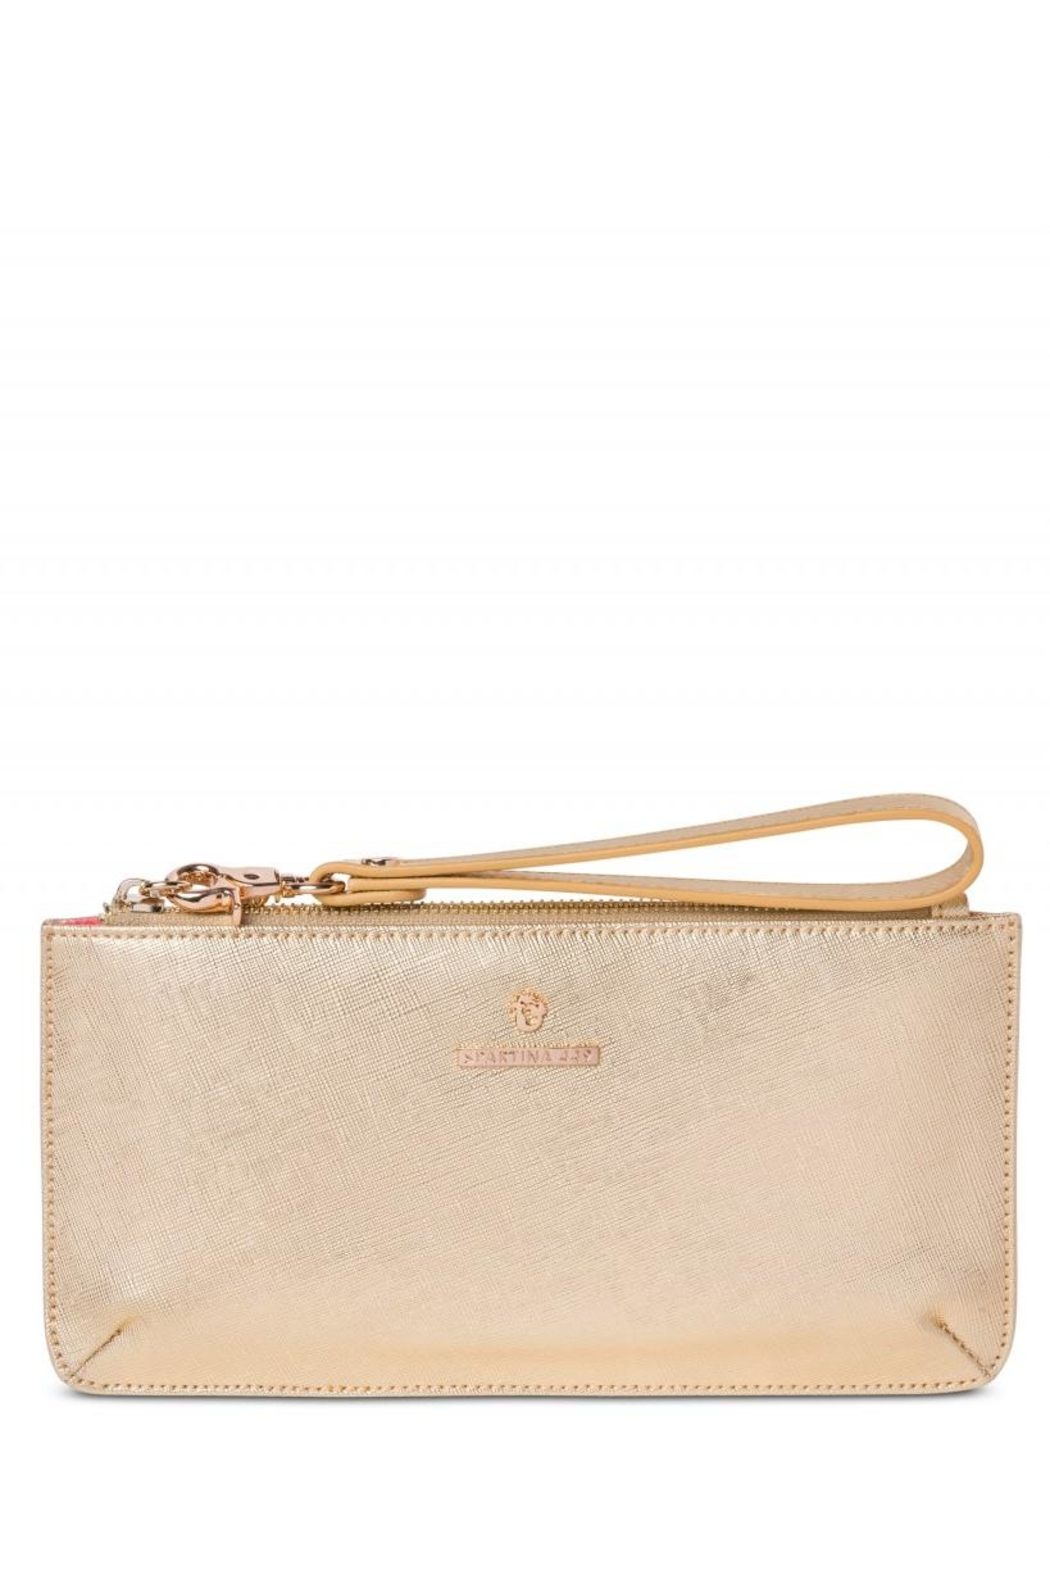 Spartina 449 East West Wristlet - Main Image